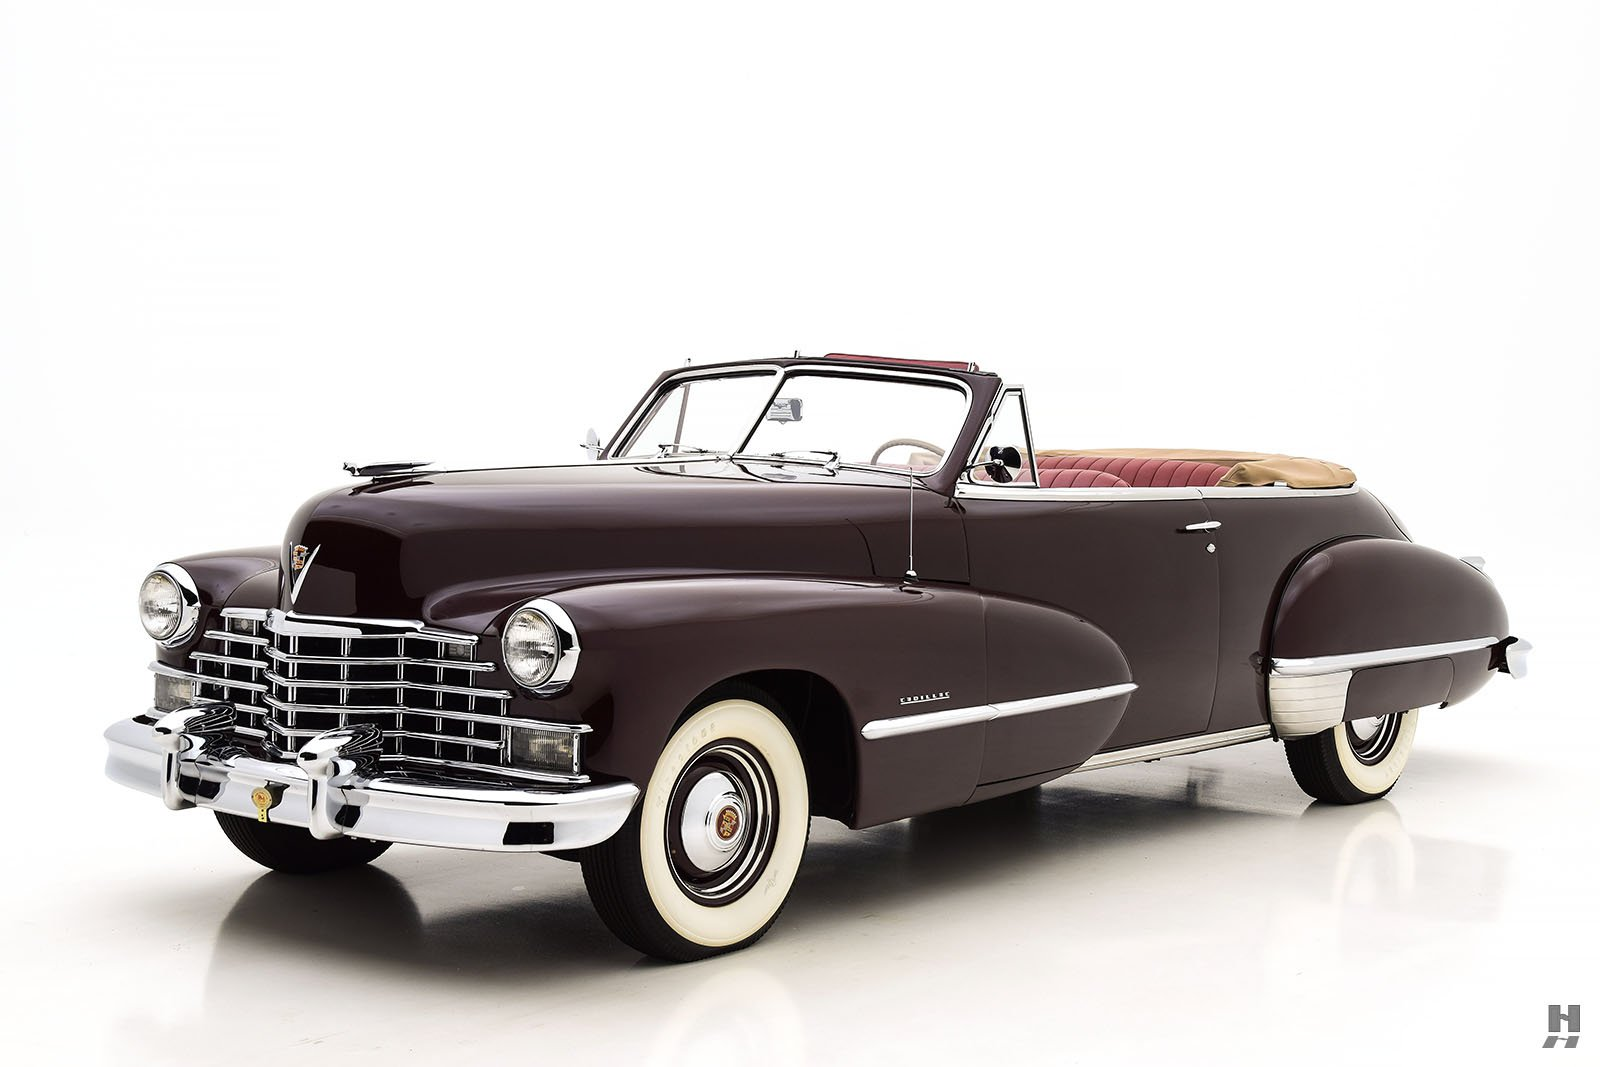 1946 Cadillac Series 62 Convertible Hyman Ltd Classic Cars 50s V8 Engine Sales Archive